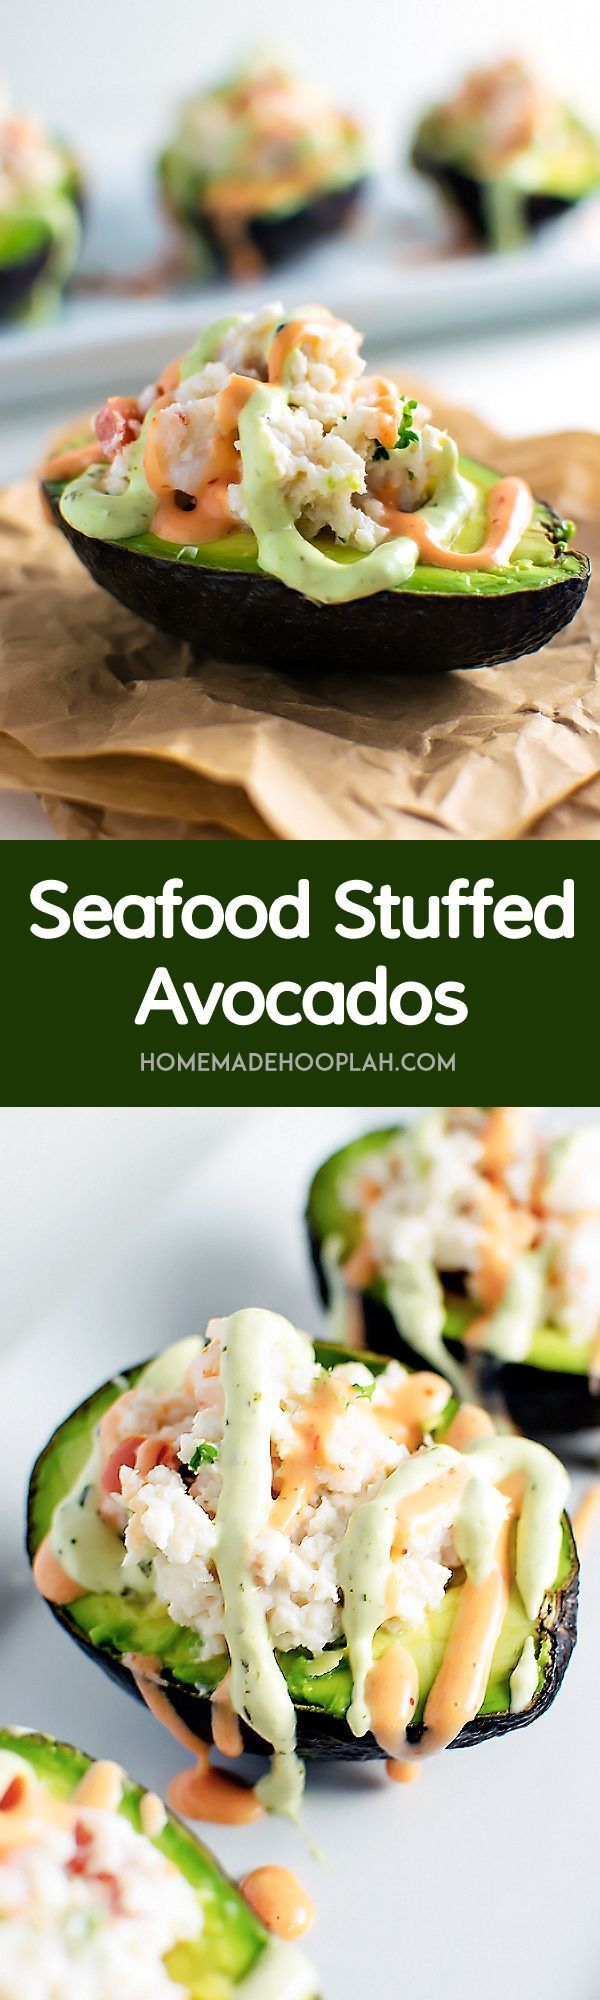 Stuffed Avocados! Halved avocados filled with shrimp, crab, and tomato and then drizzled with sriracha and avocado cream on top. |